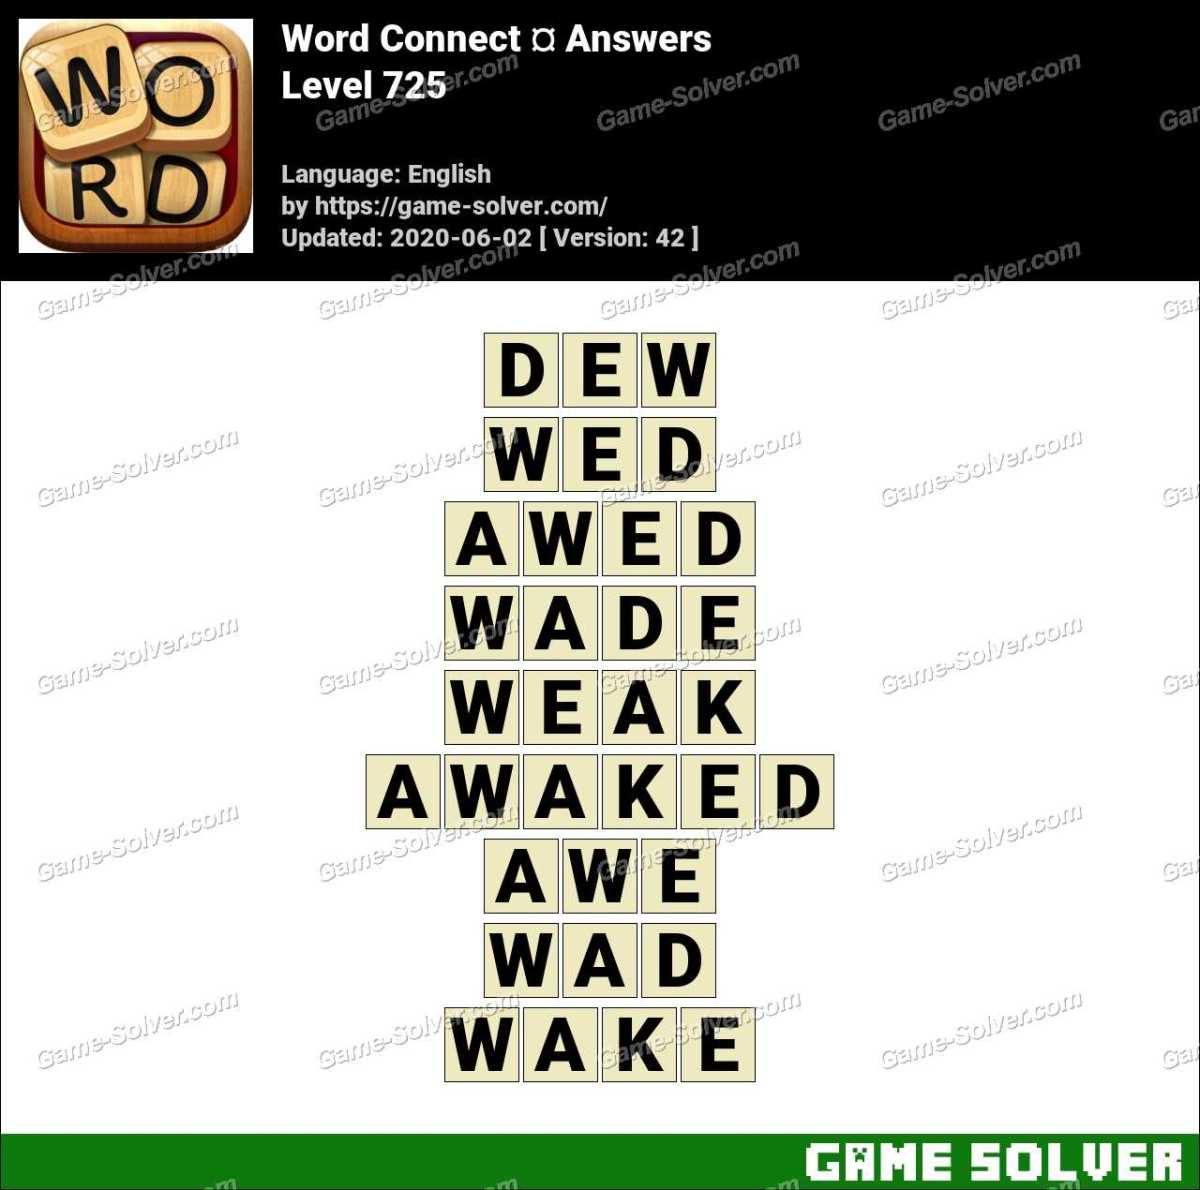 Word Connect Level 725 Answers